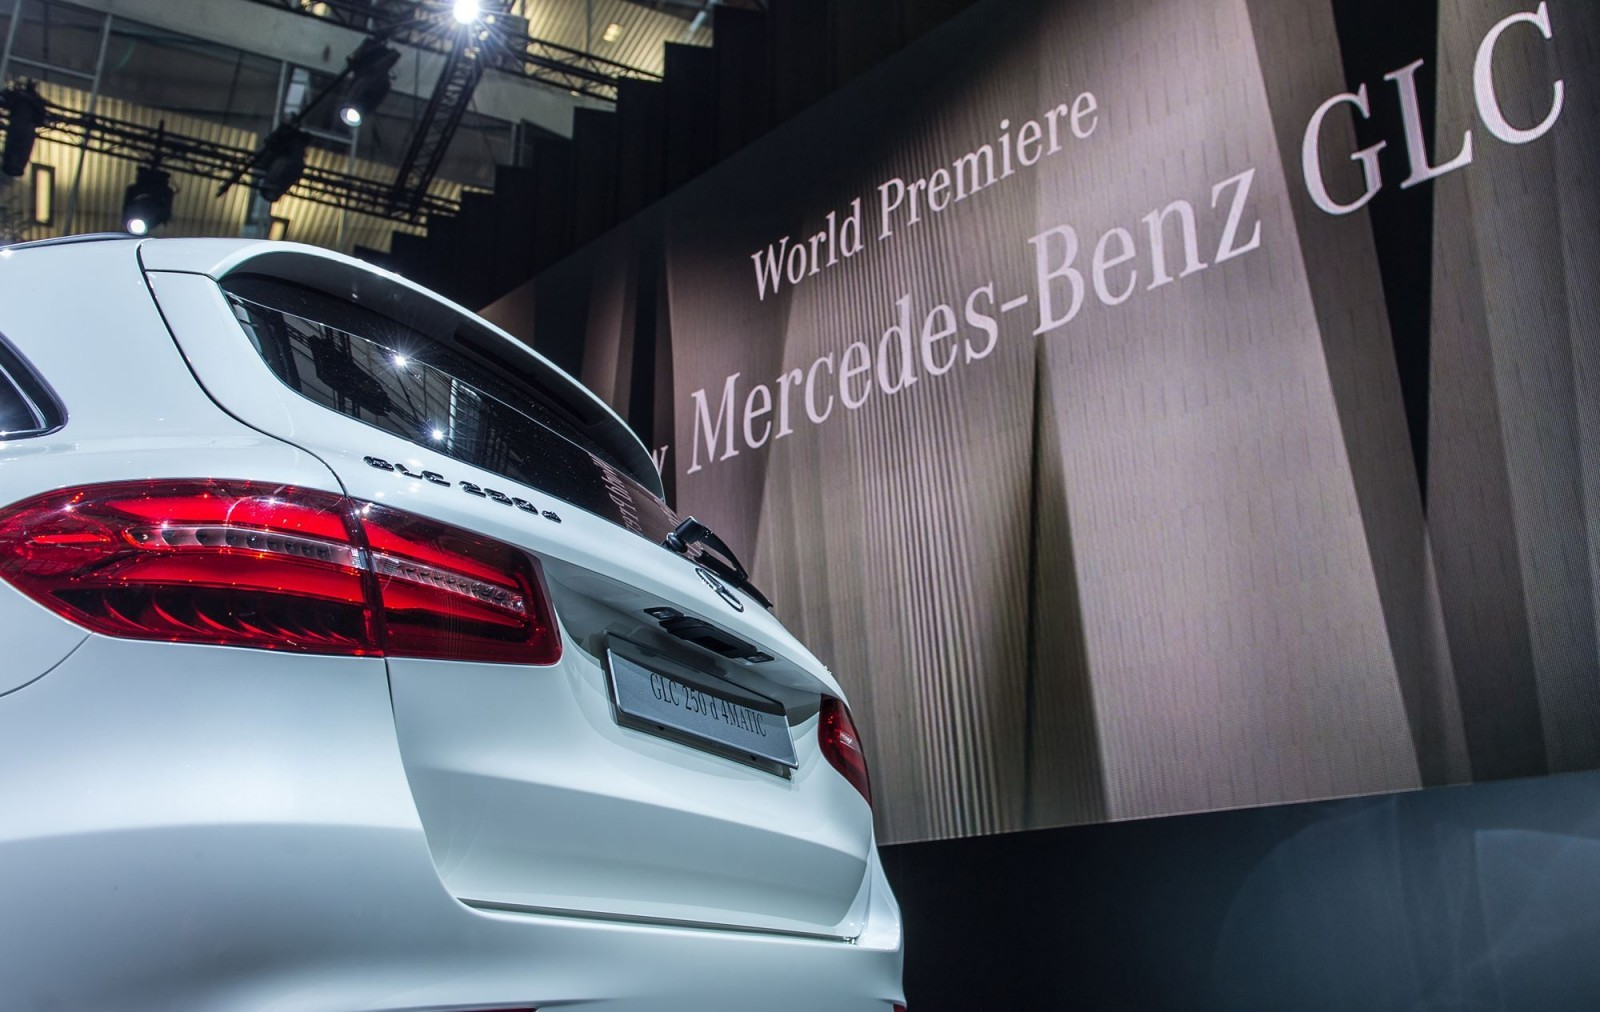 Weltpremiere: Der neue Mercedes-Benz GLC, Metzingen 2015